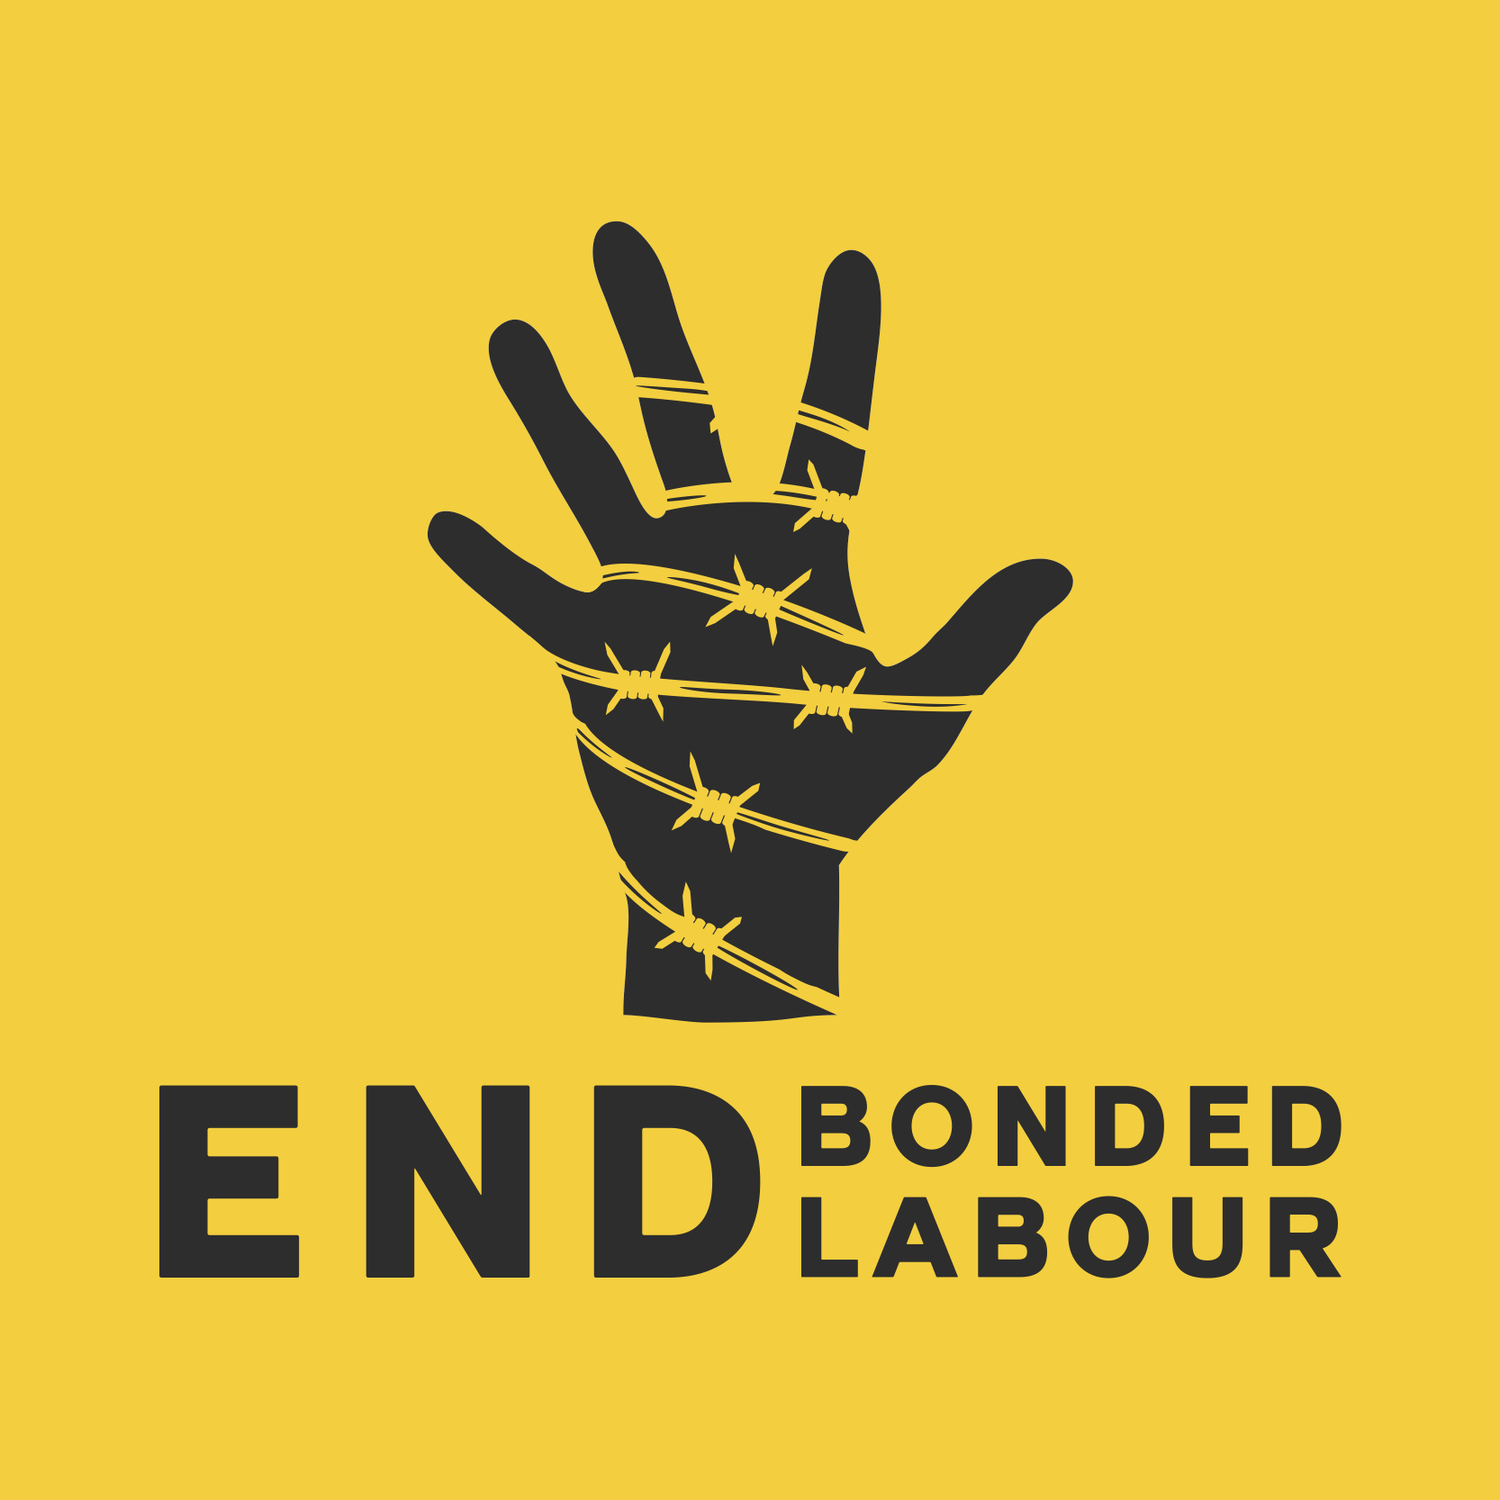 End-Bonded-Labour-Keychains-Outlines.jpg